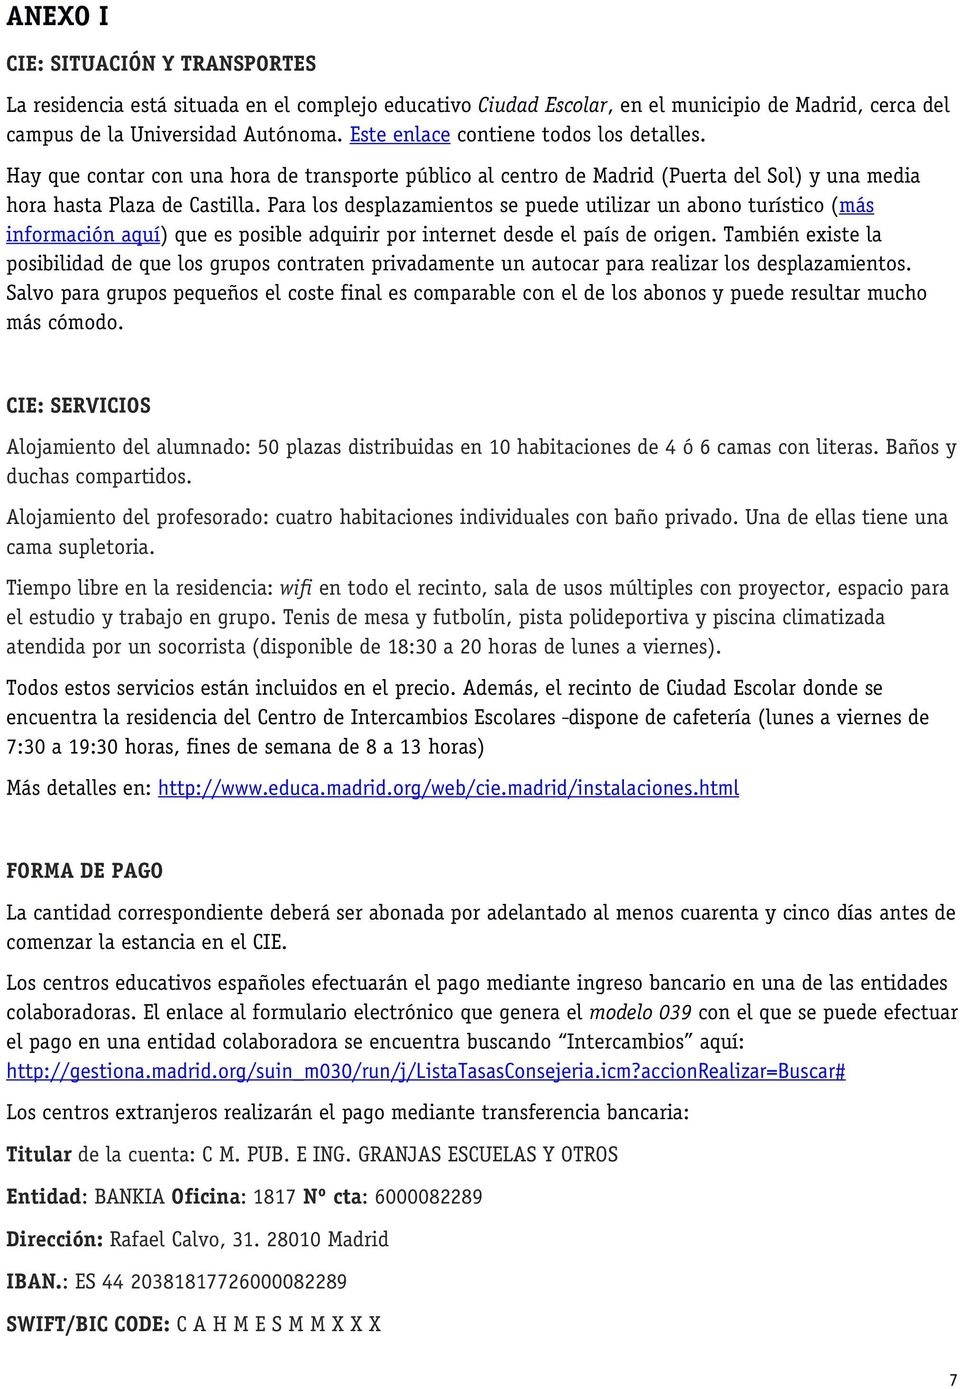 Convocatoria de estancias educativas en madrid para for Bankia oficina de internet